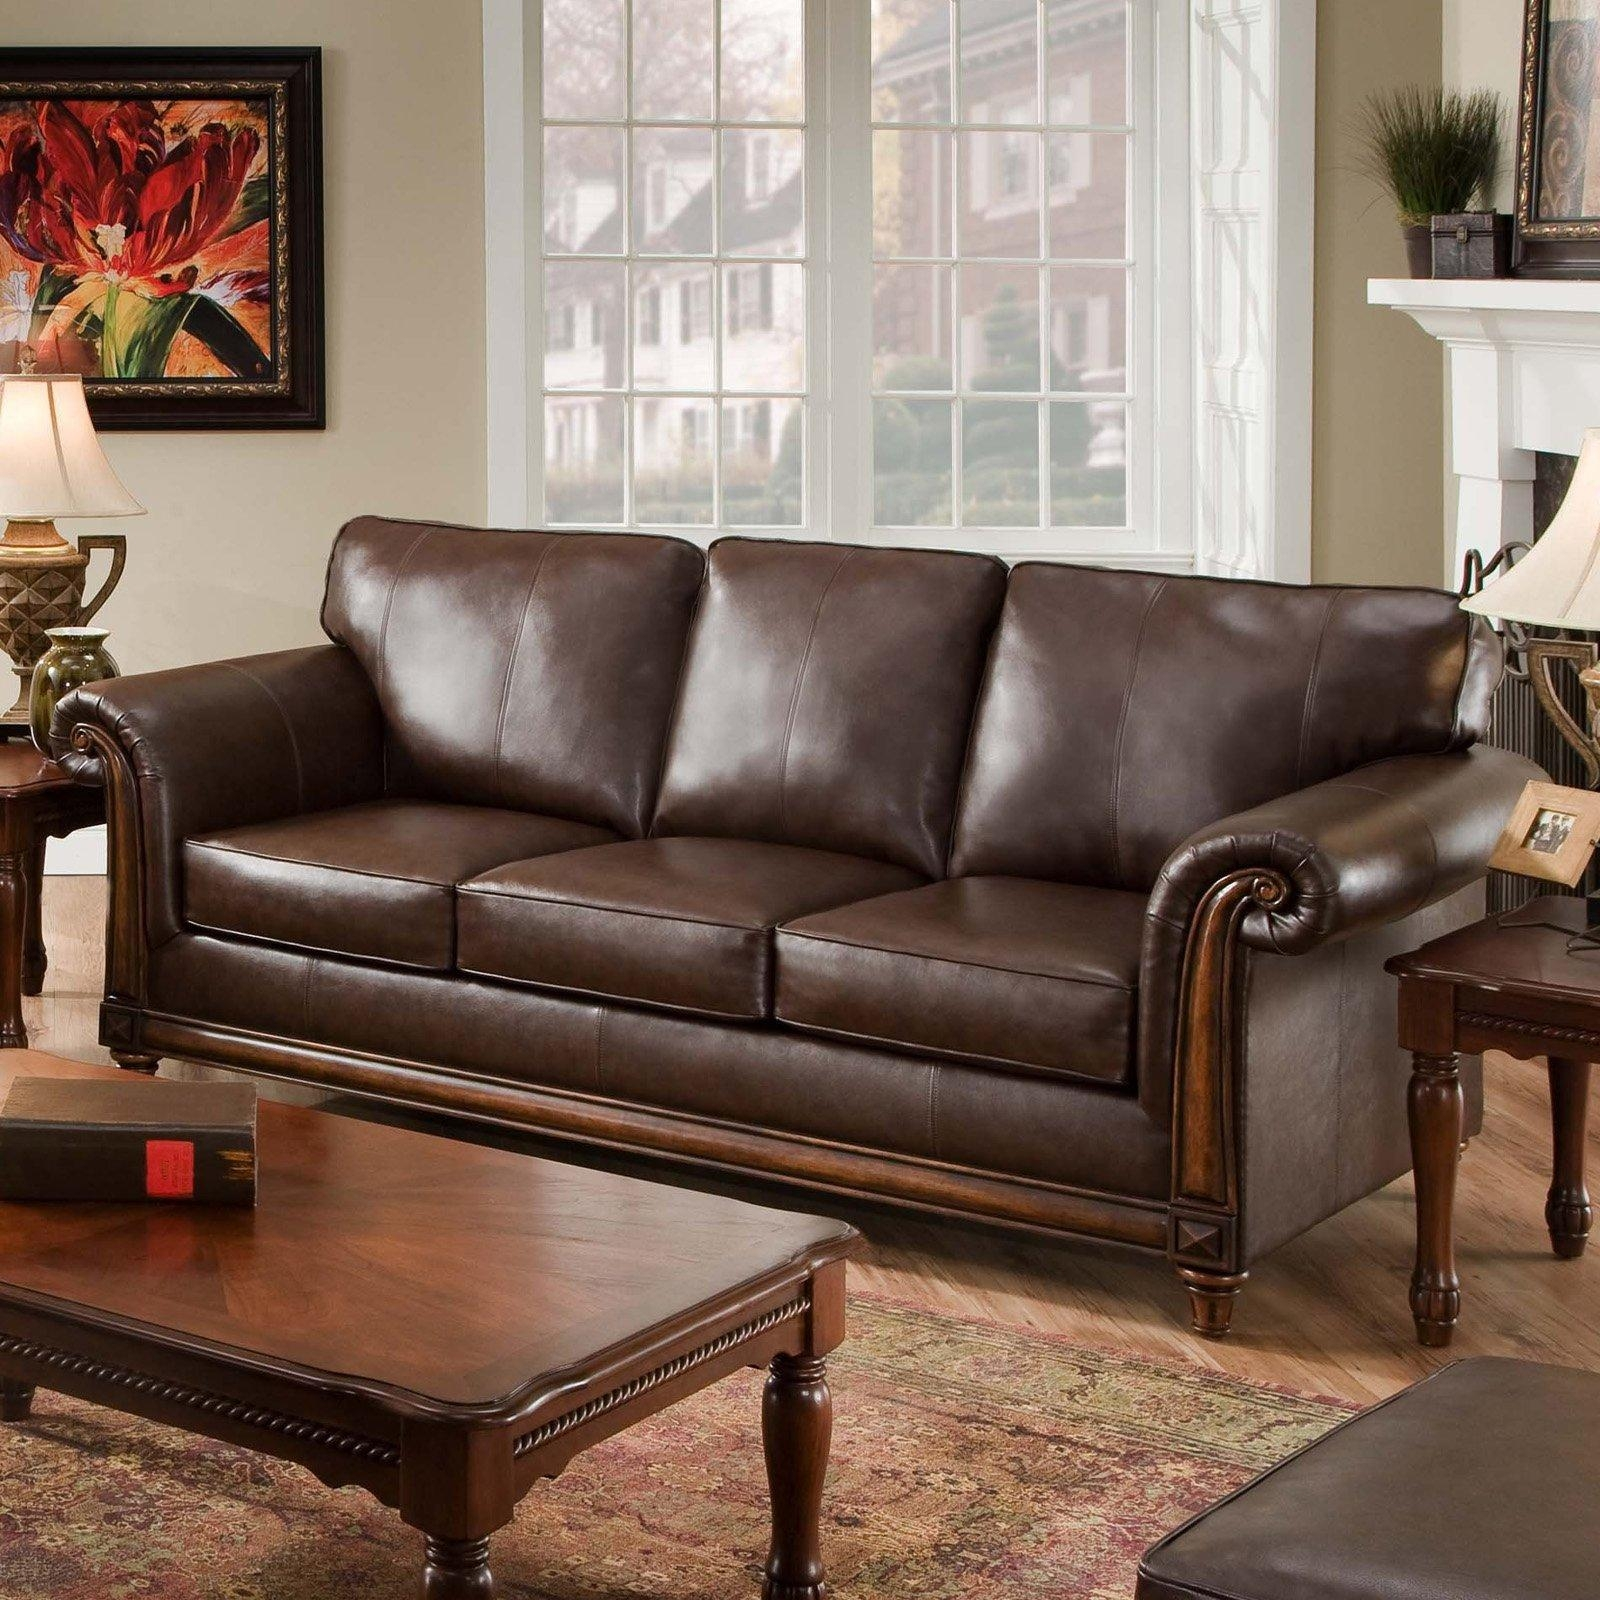 Simmons San Diego Coffee Leather Sofa | Hayneedle With Simmons Sofas (Image 3 of 20)